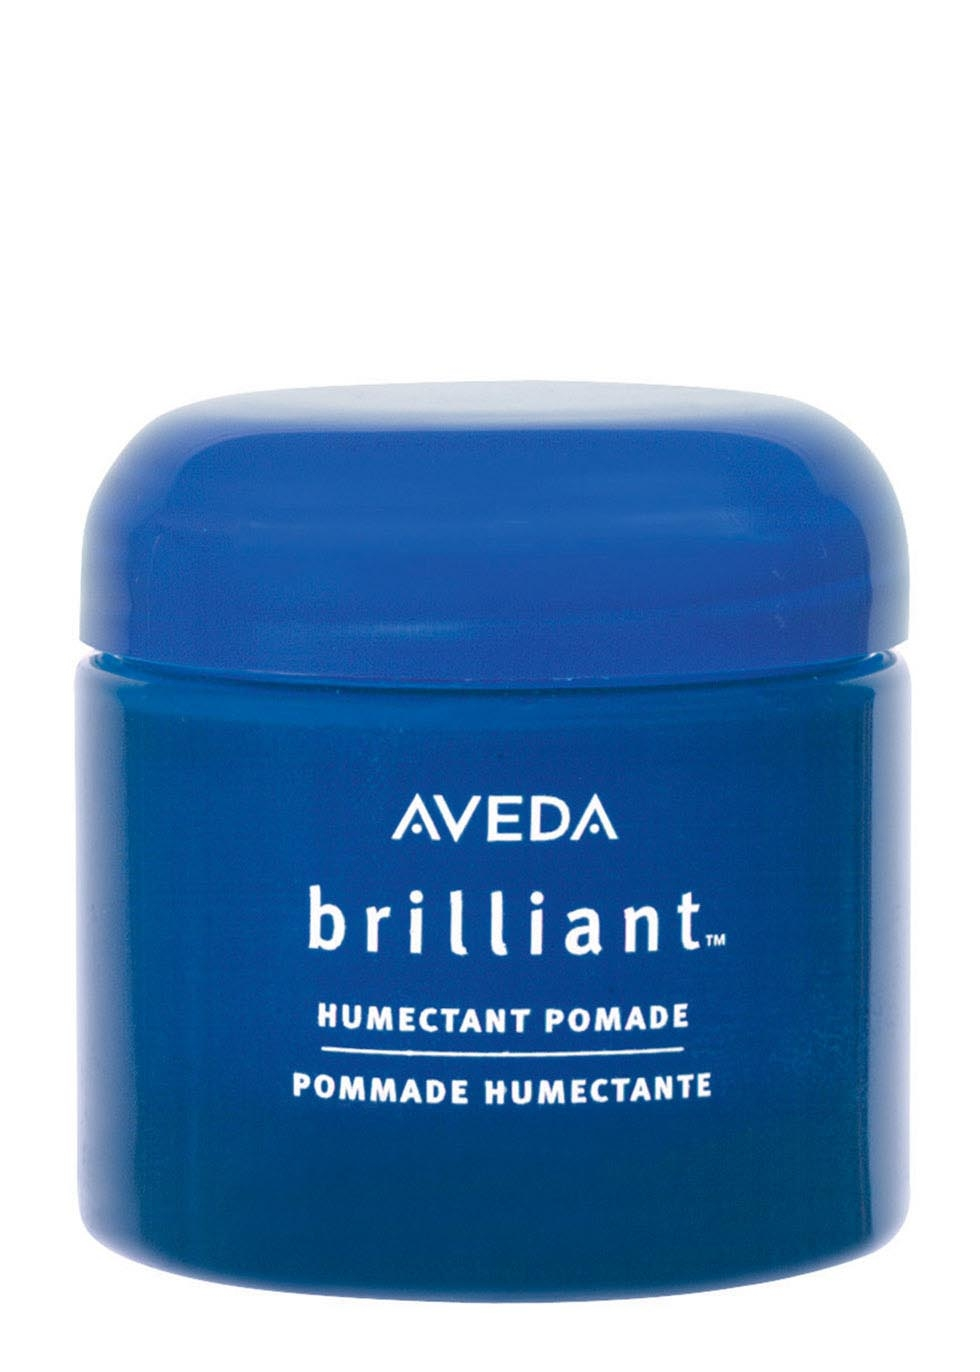 Brilliant™ Humectant Pomade 75ml